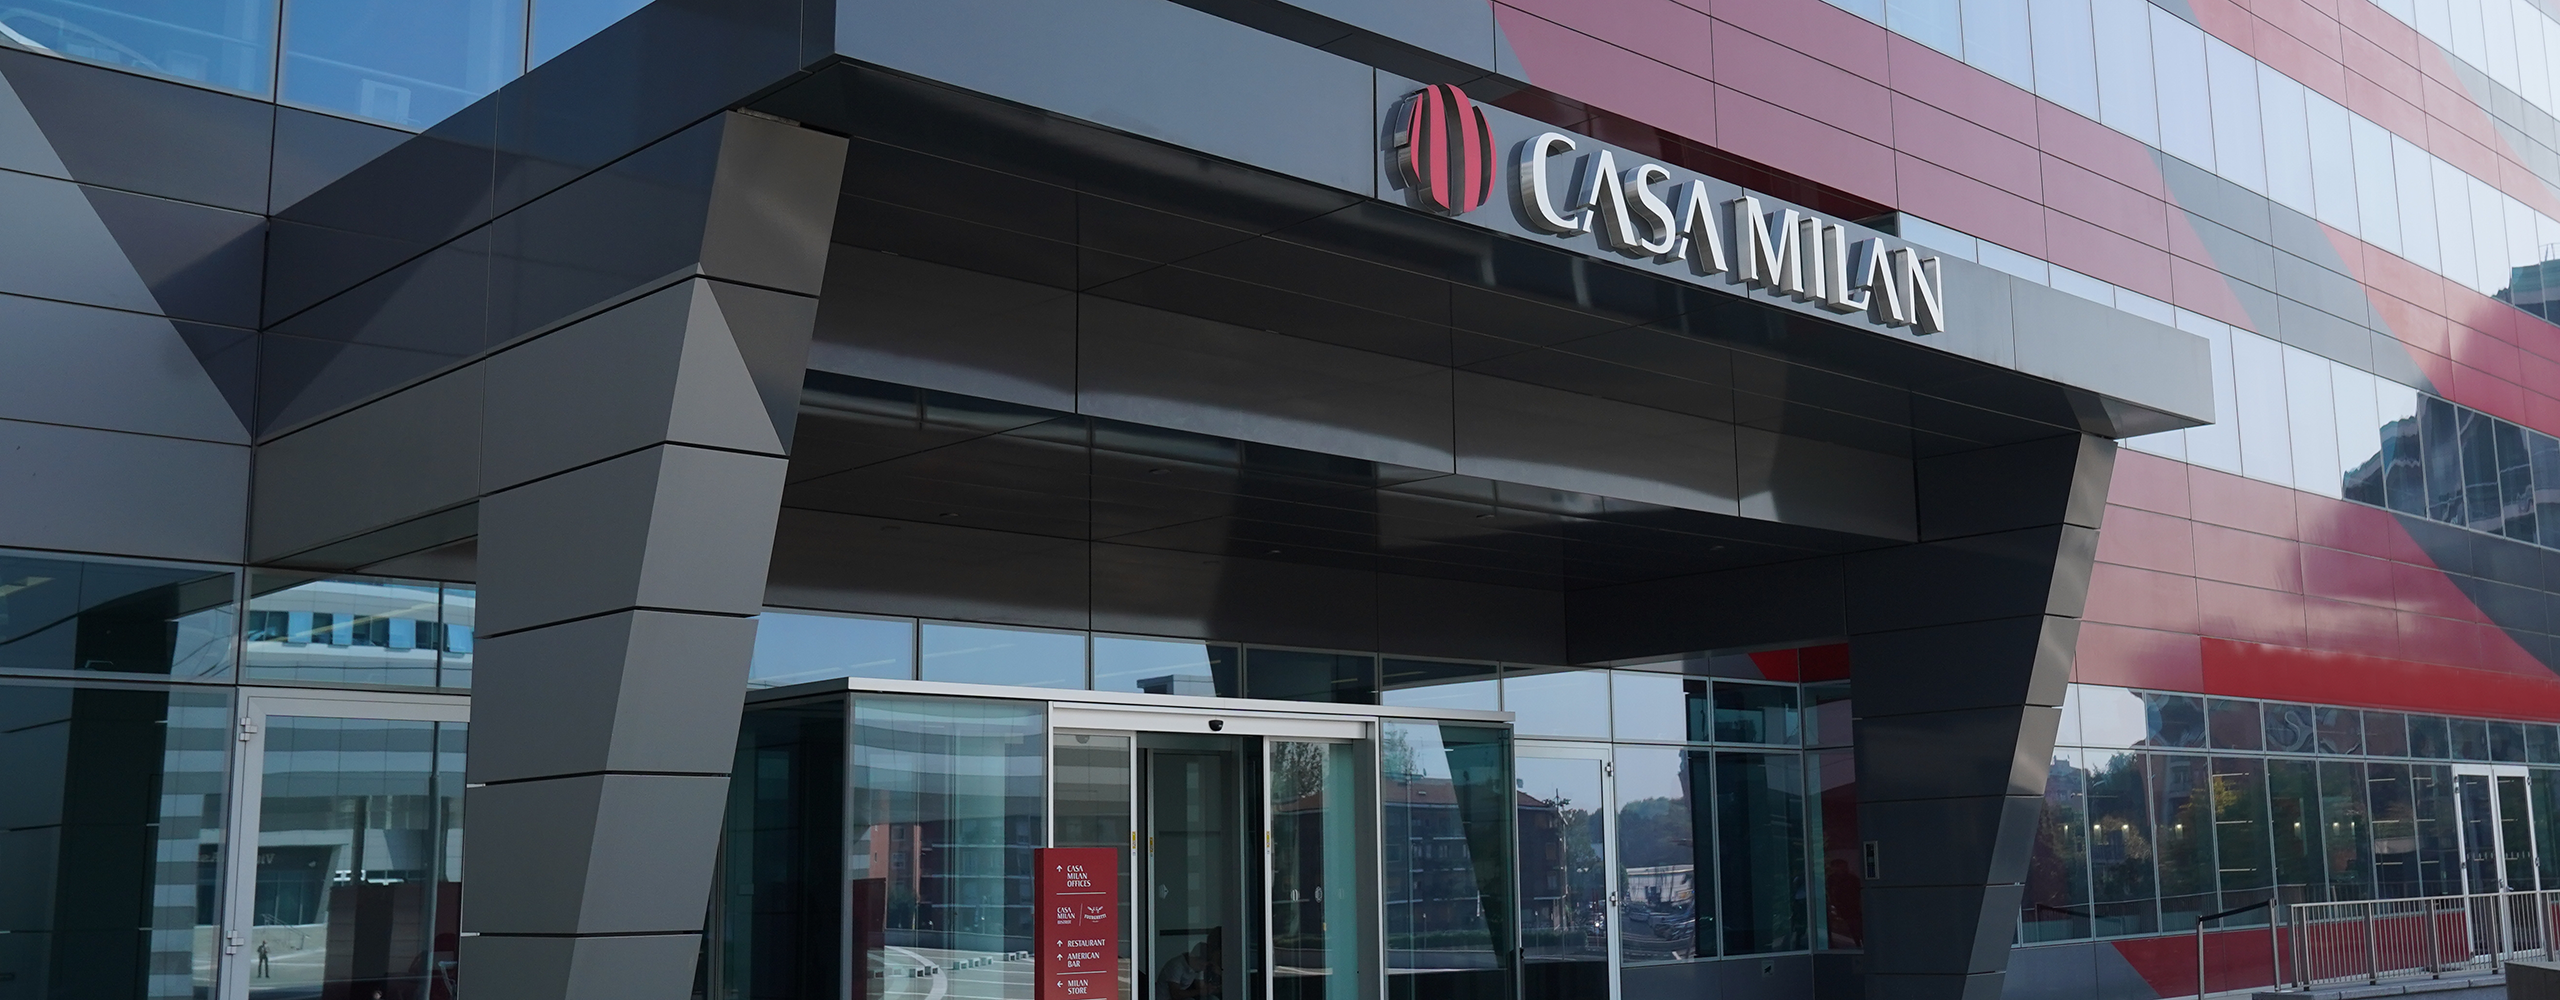 Casa Milan: Info of the Official AC Milan Headquarter